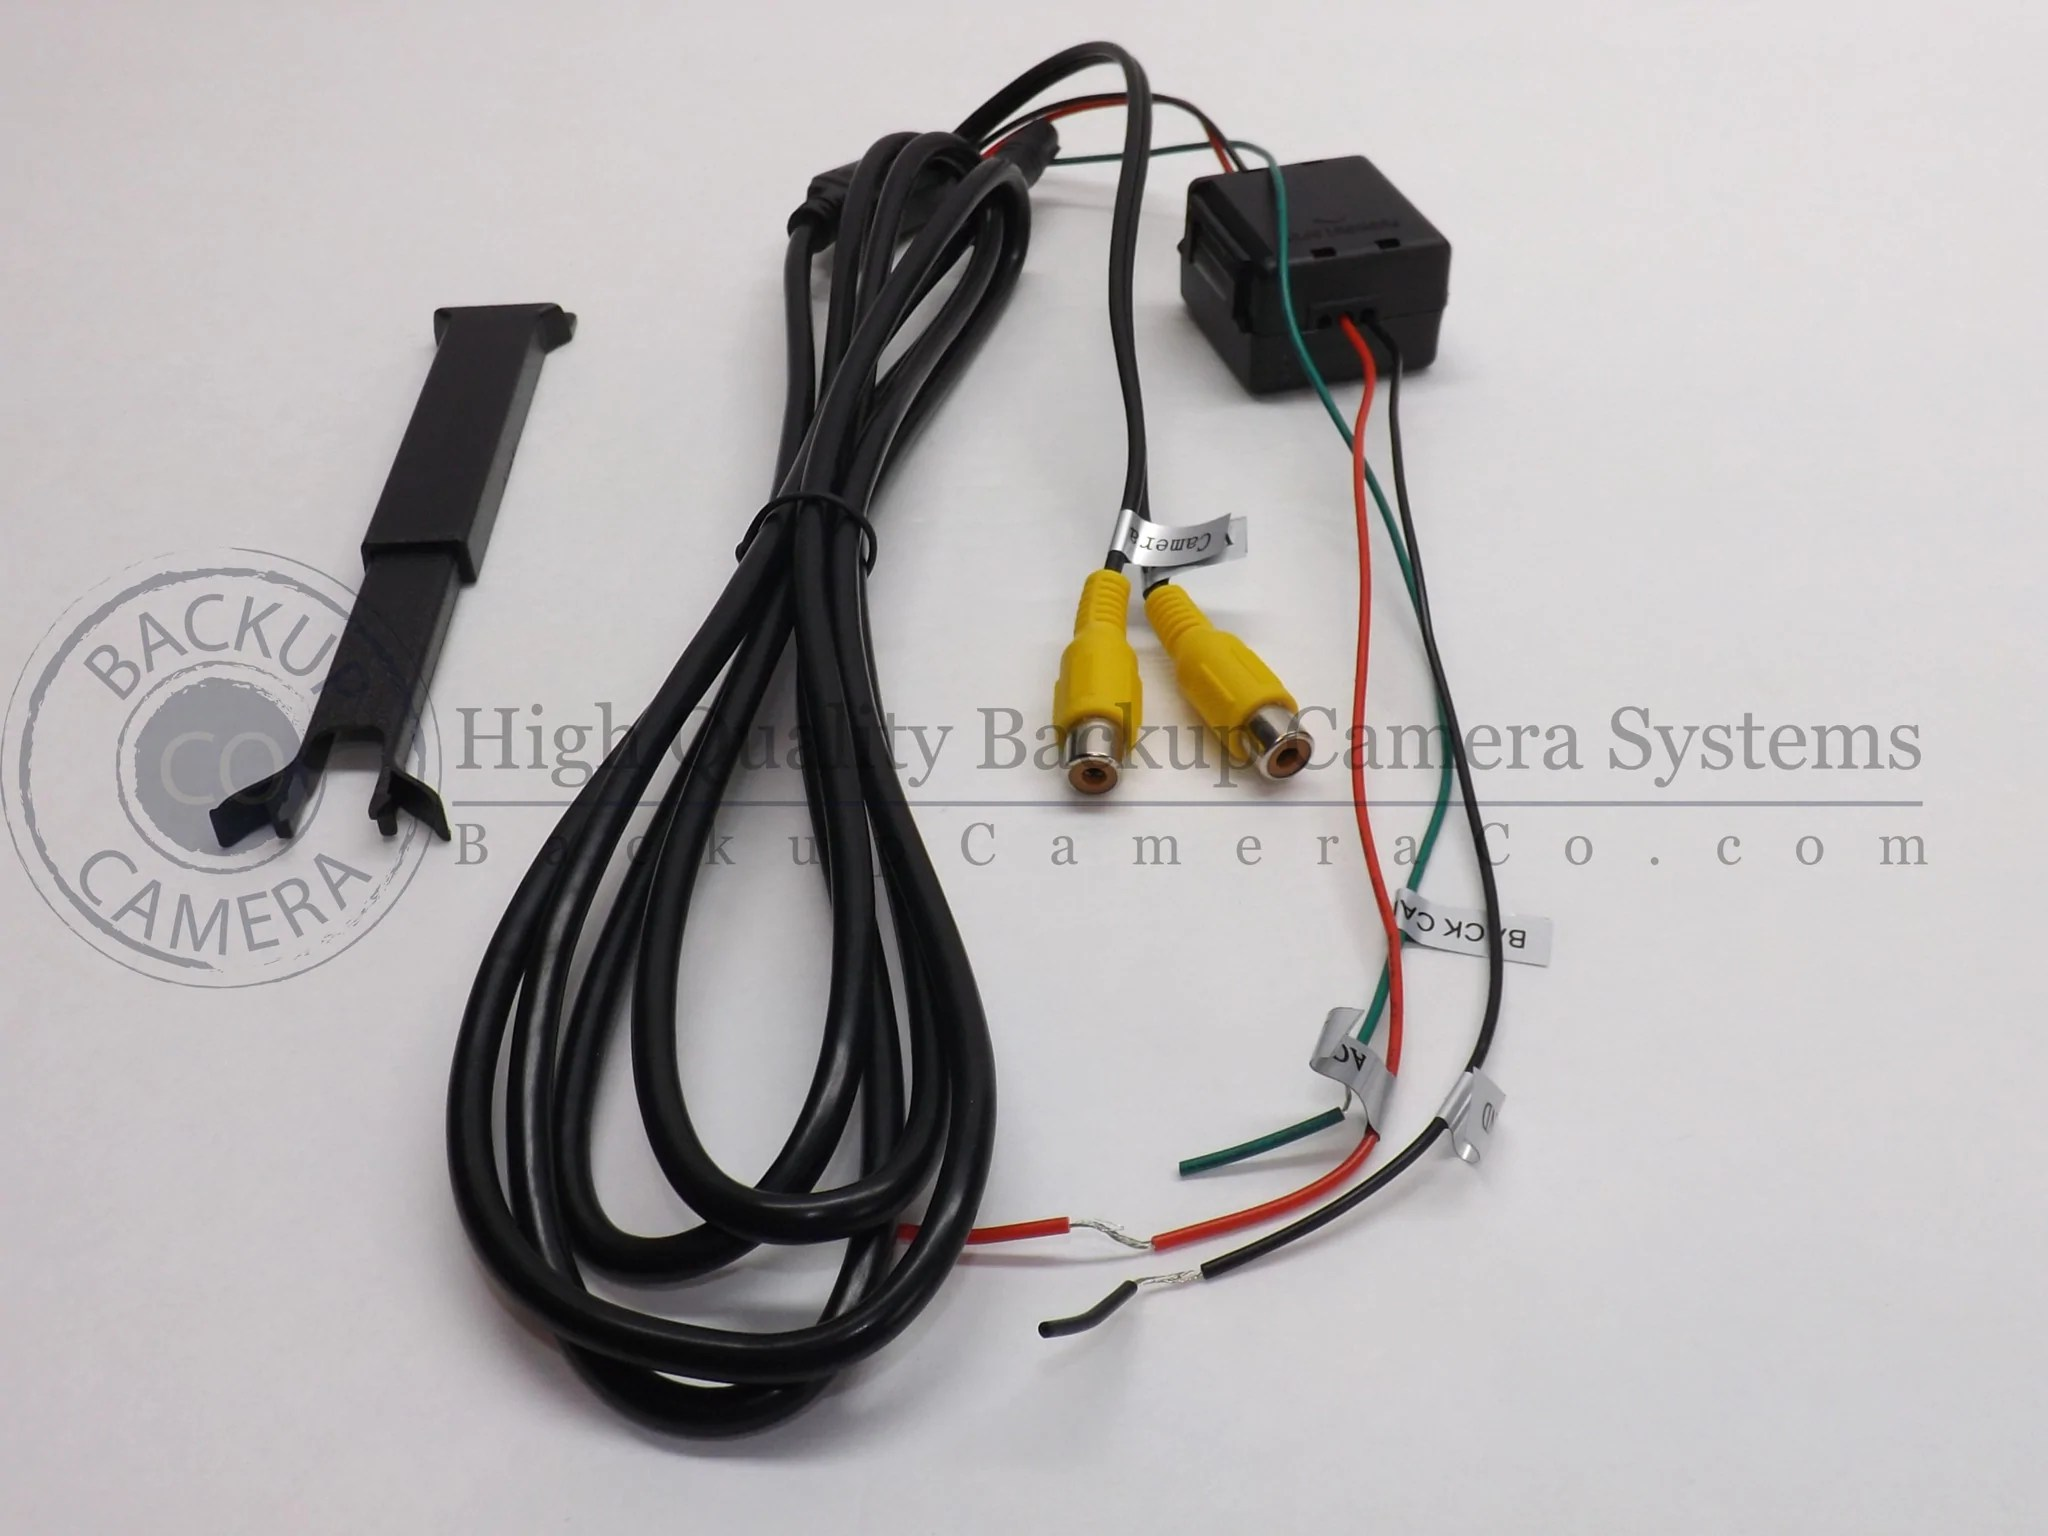 auto dimming oem replacement rear view mirror with 4 3 lcd display for back up camera [ 2048 x 1536 Pixel ]